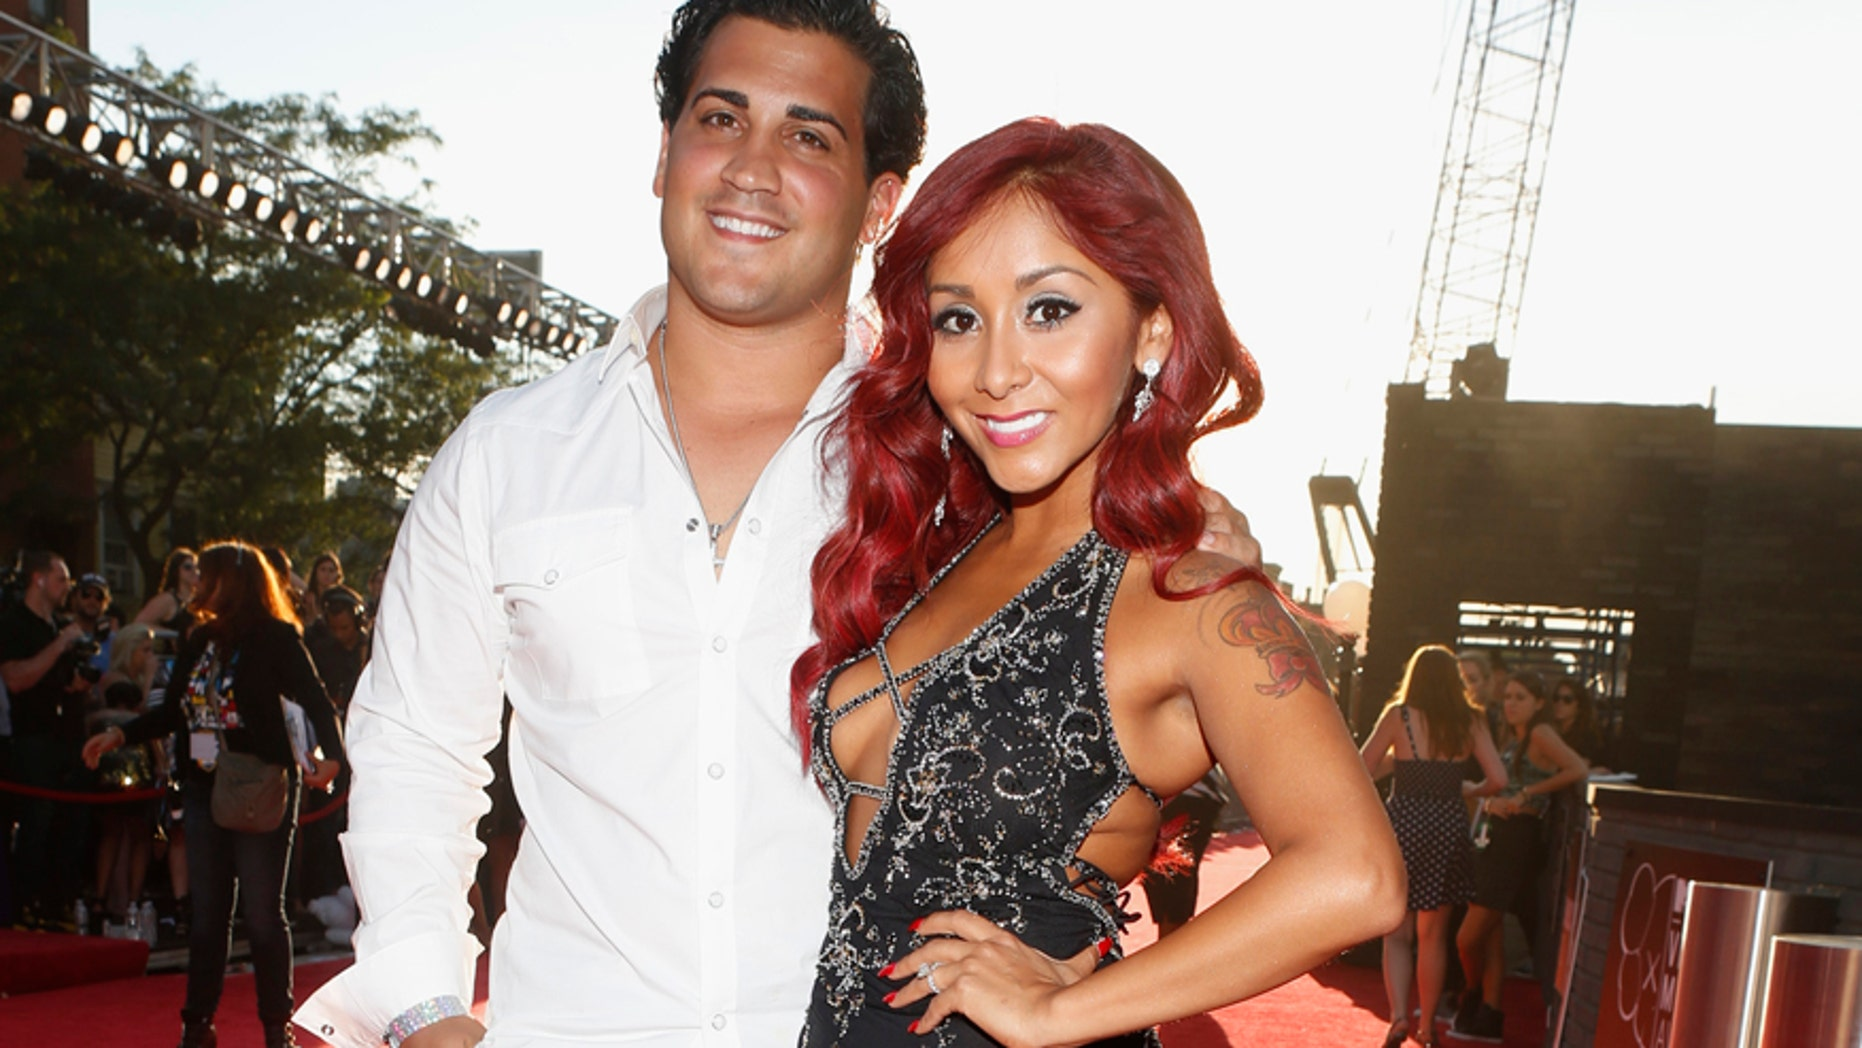 """Jionni LaValle and Nicole """"Snooki"""" Polizzi arrive for the 2013 MTV Video Music Awards in New York August 25, 2013."""